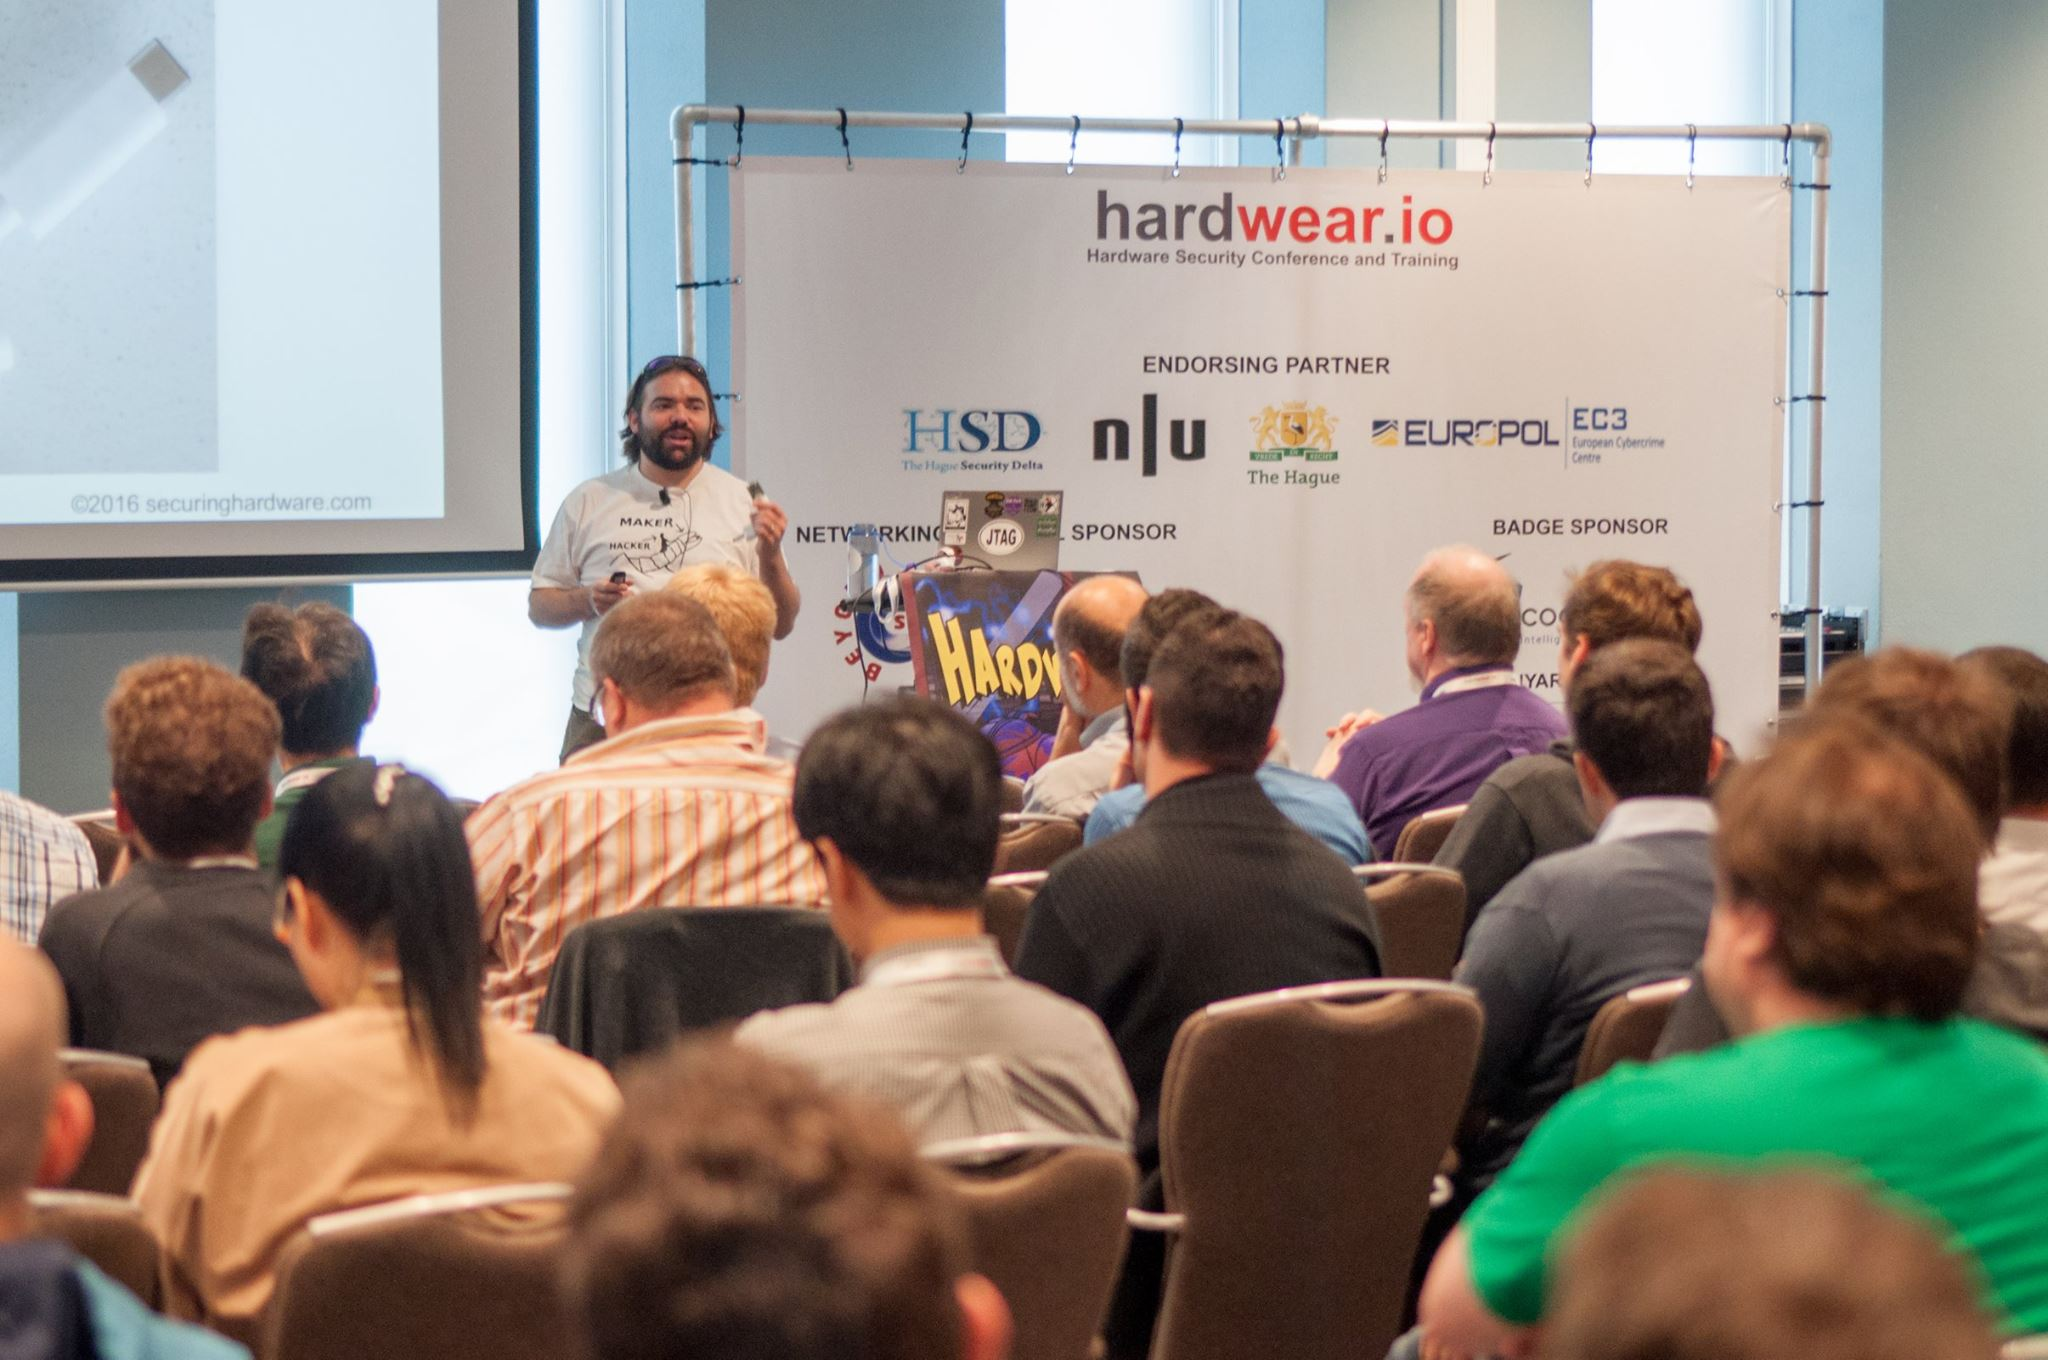 Hardware Security Conference & Training | hardwear io USA 2019